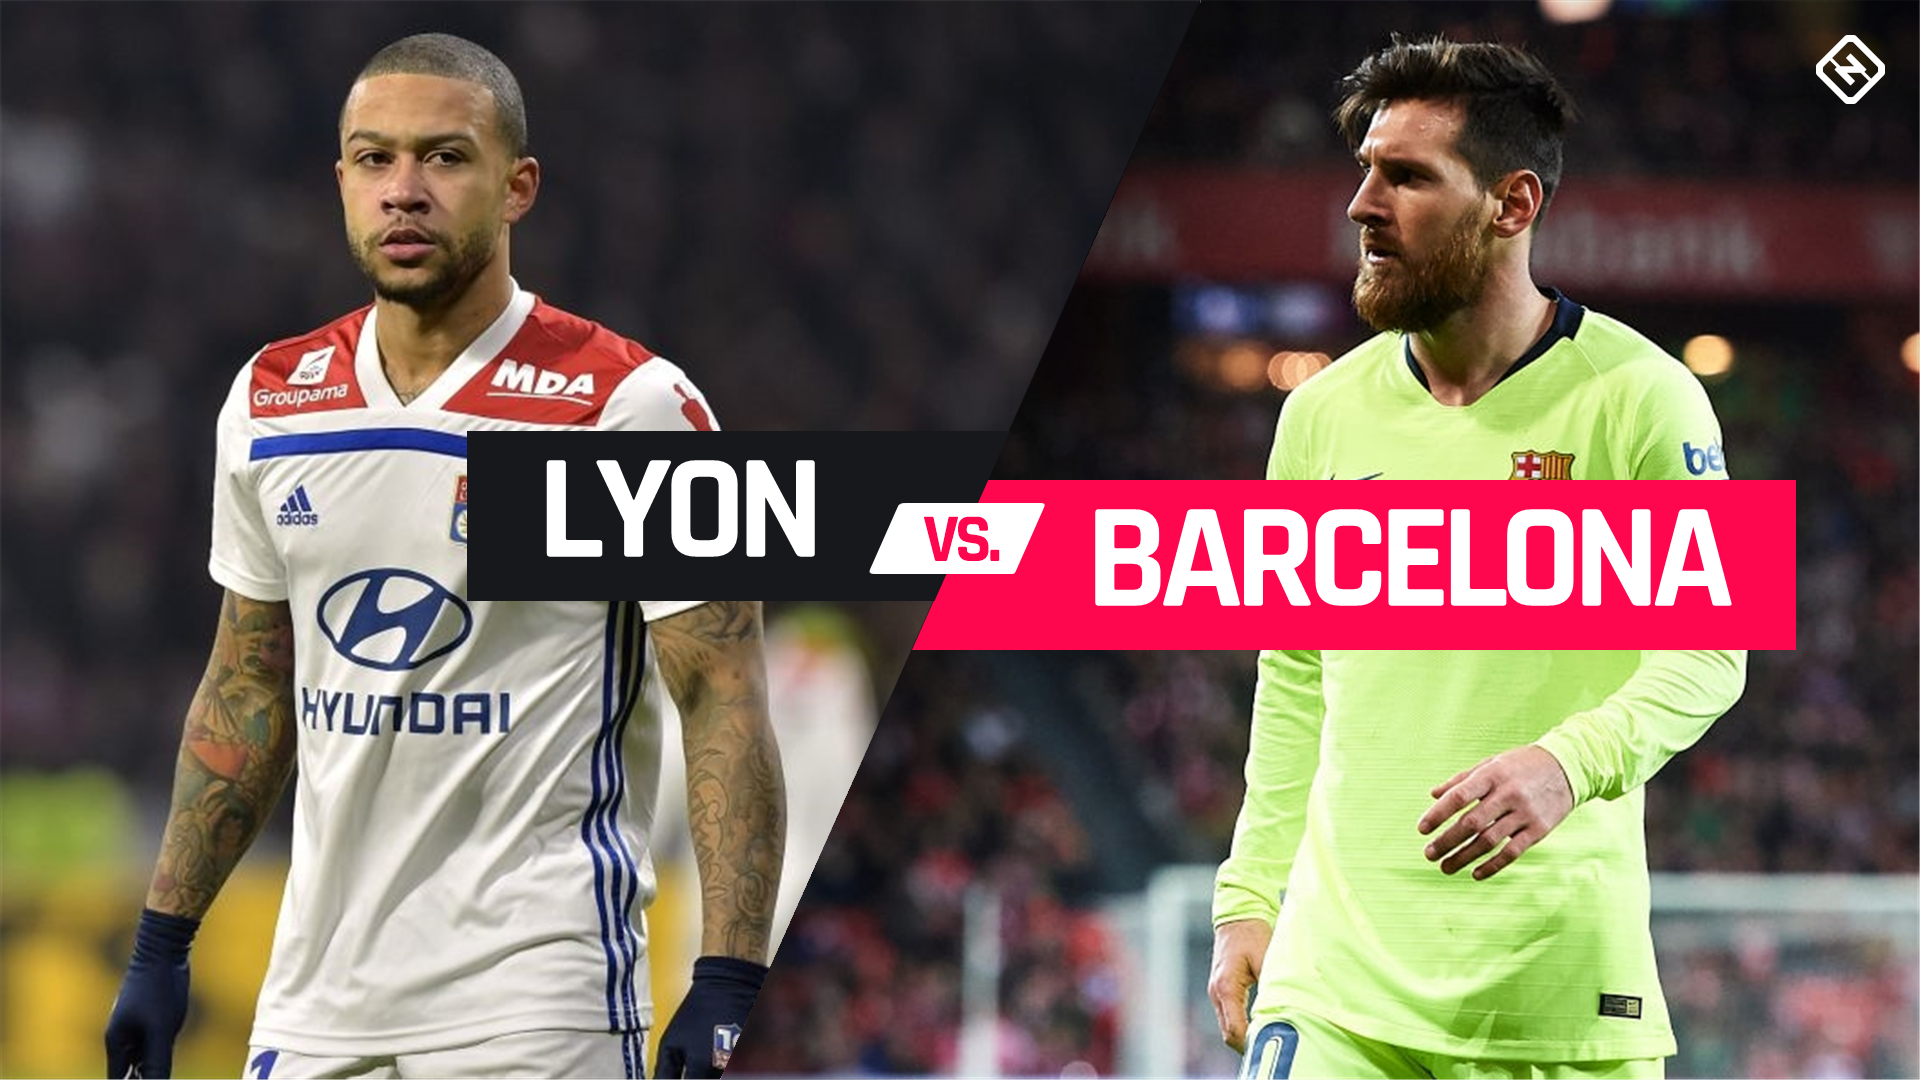 Barcelona Lyon Update: How To Watch Lyon Vs. Barcelona In Canada: Live Stream For